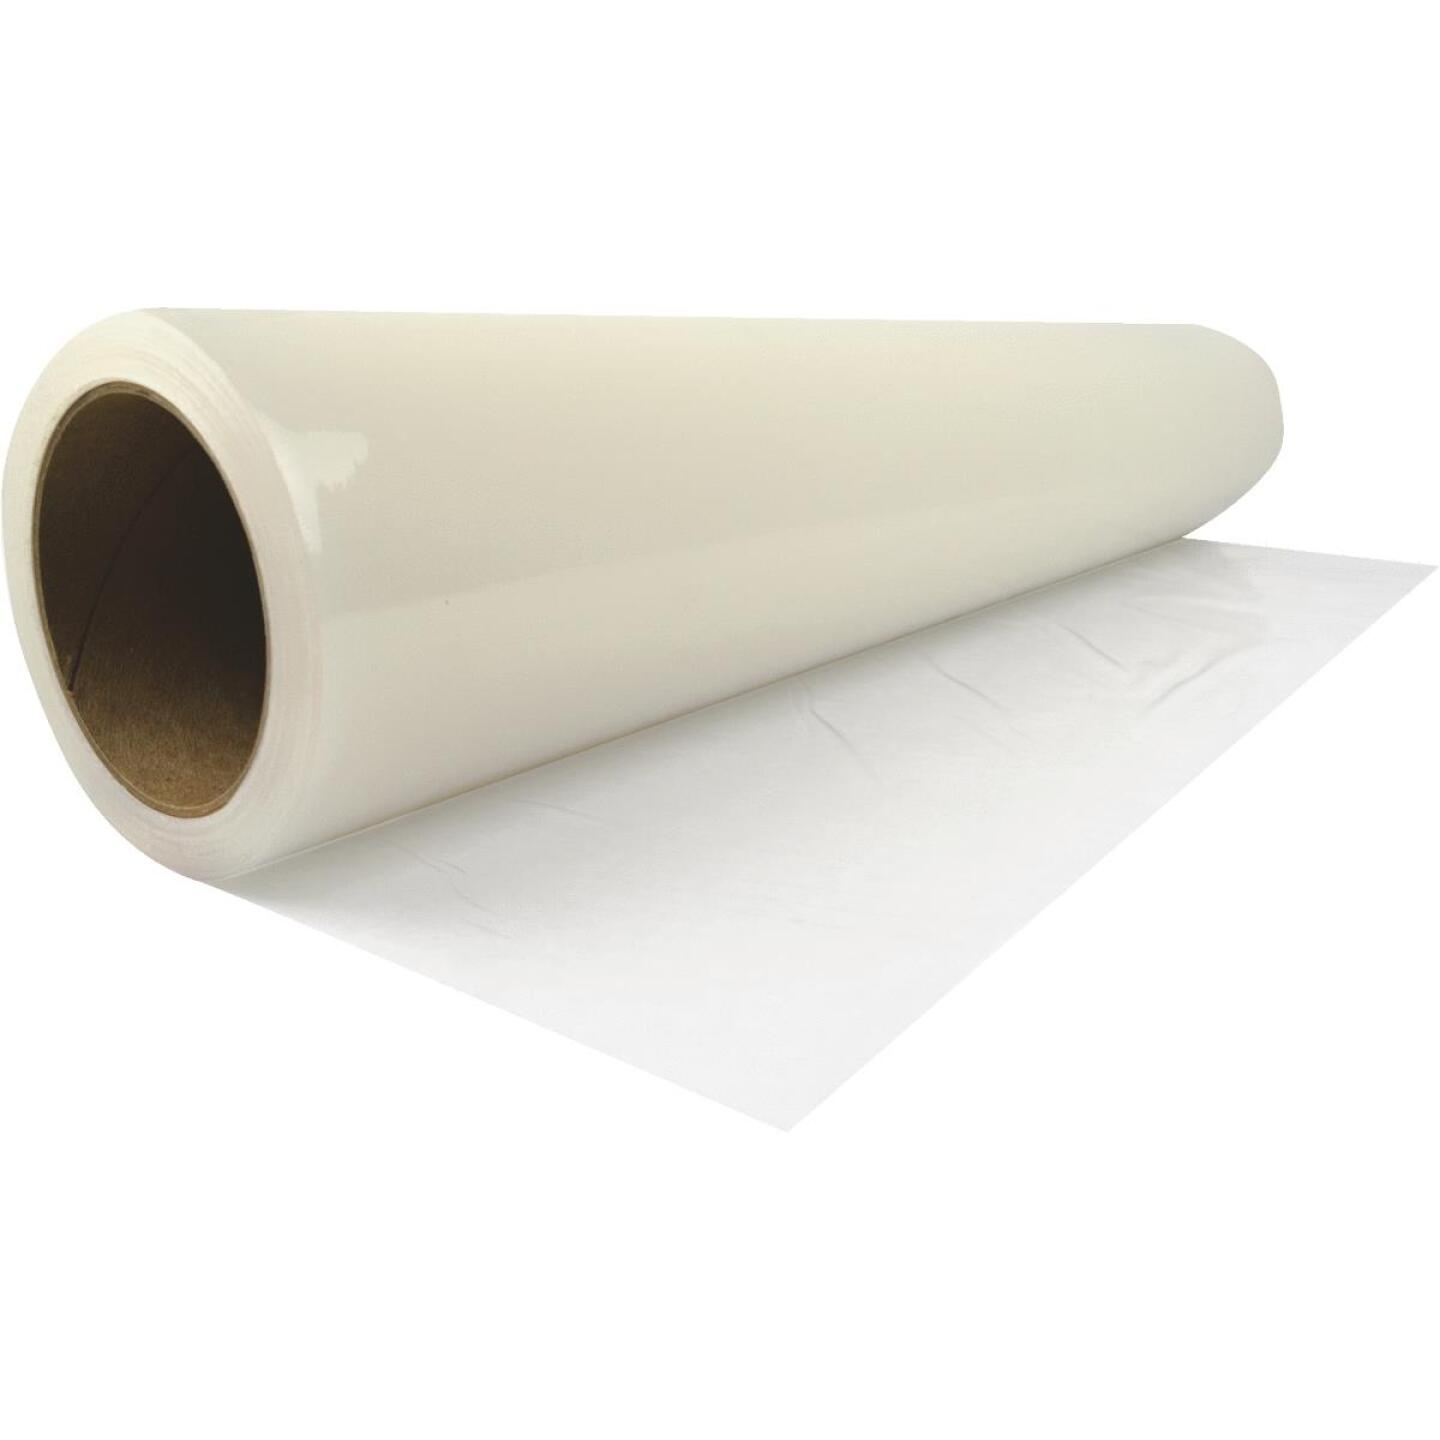 Surface Shields Carpet Shield 24 In. x 200 Ft. Self-Adhesive Film Floor Protector Image 1